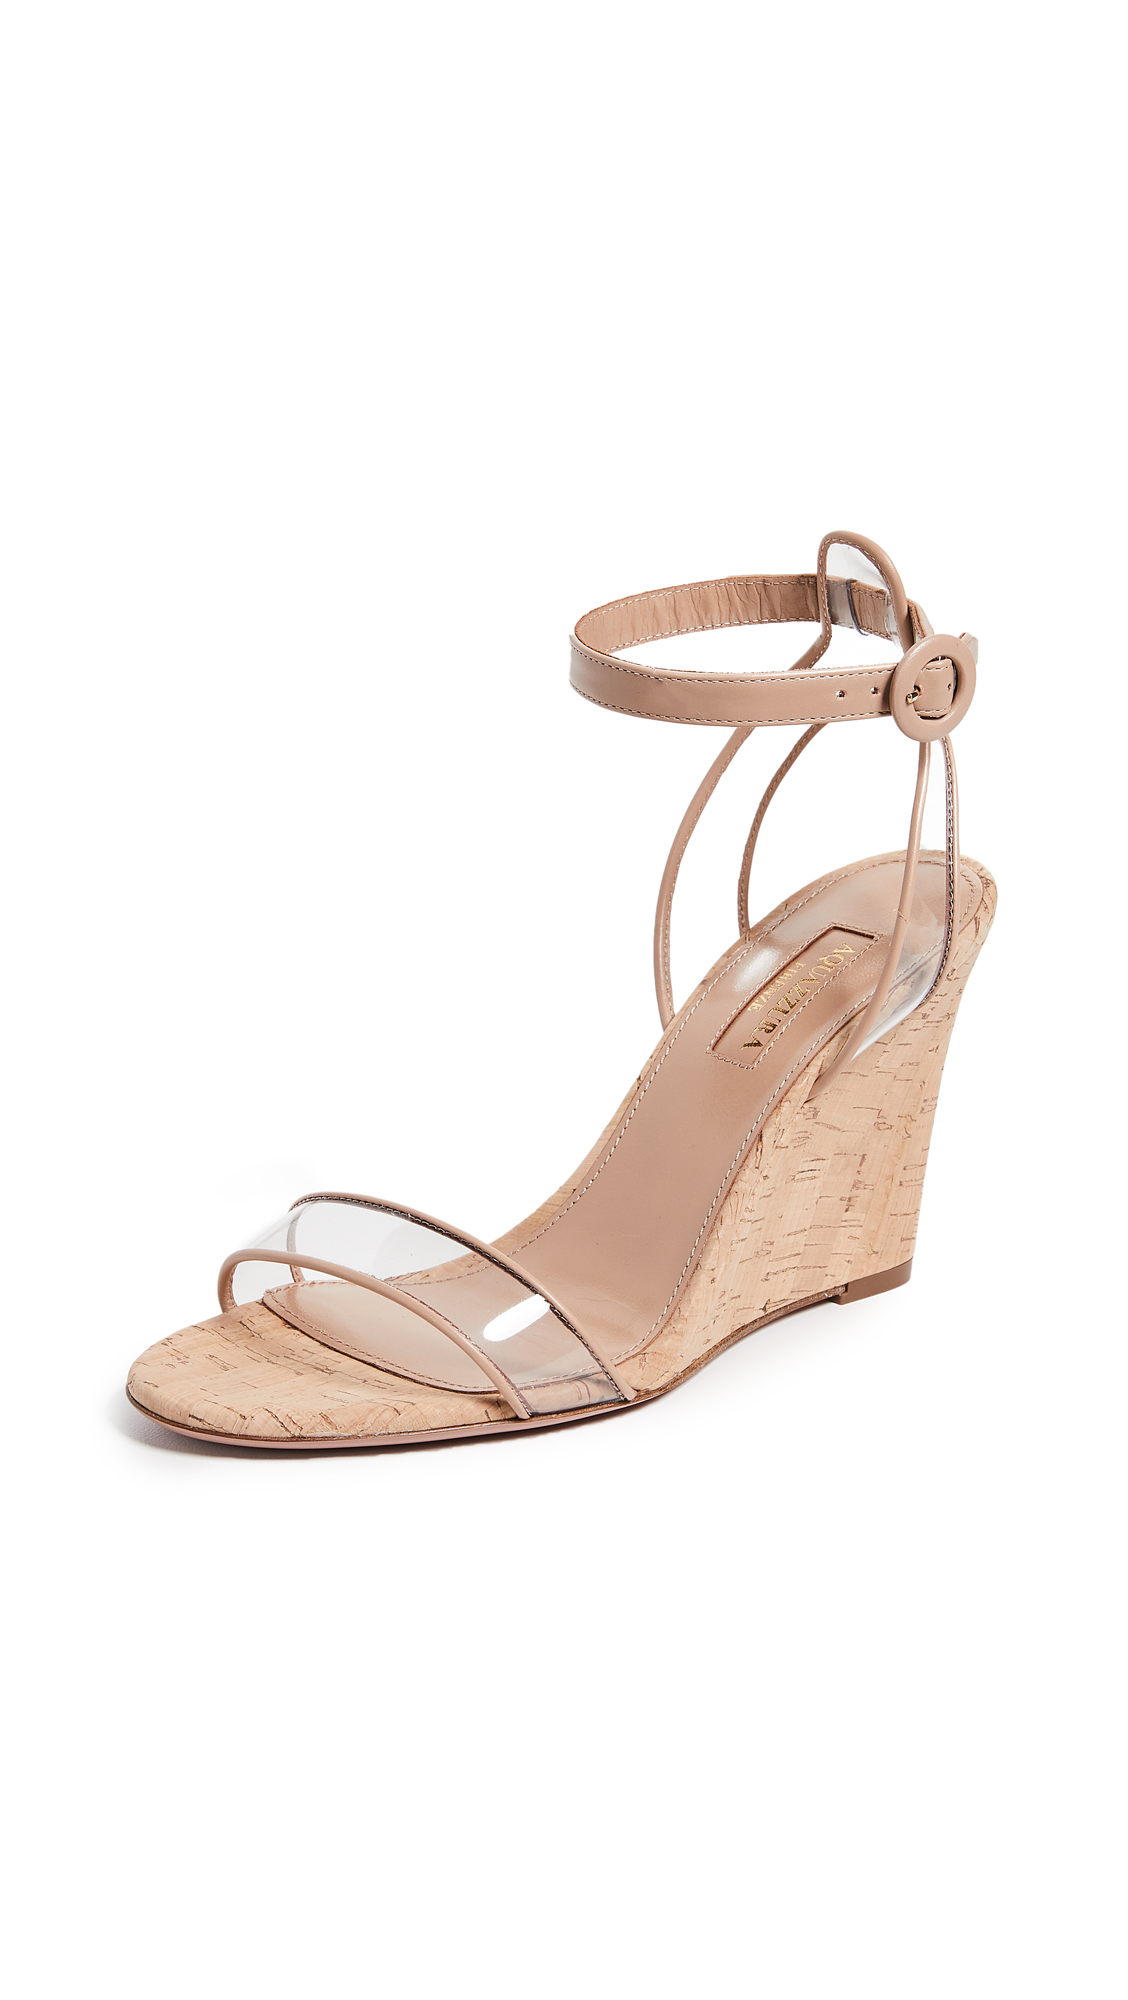 Buy Aquazzura 85mm Minimalist Wedge Sandals online, shop Aquazzura